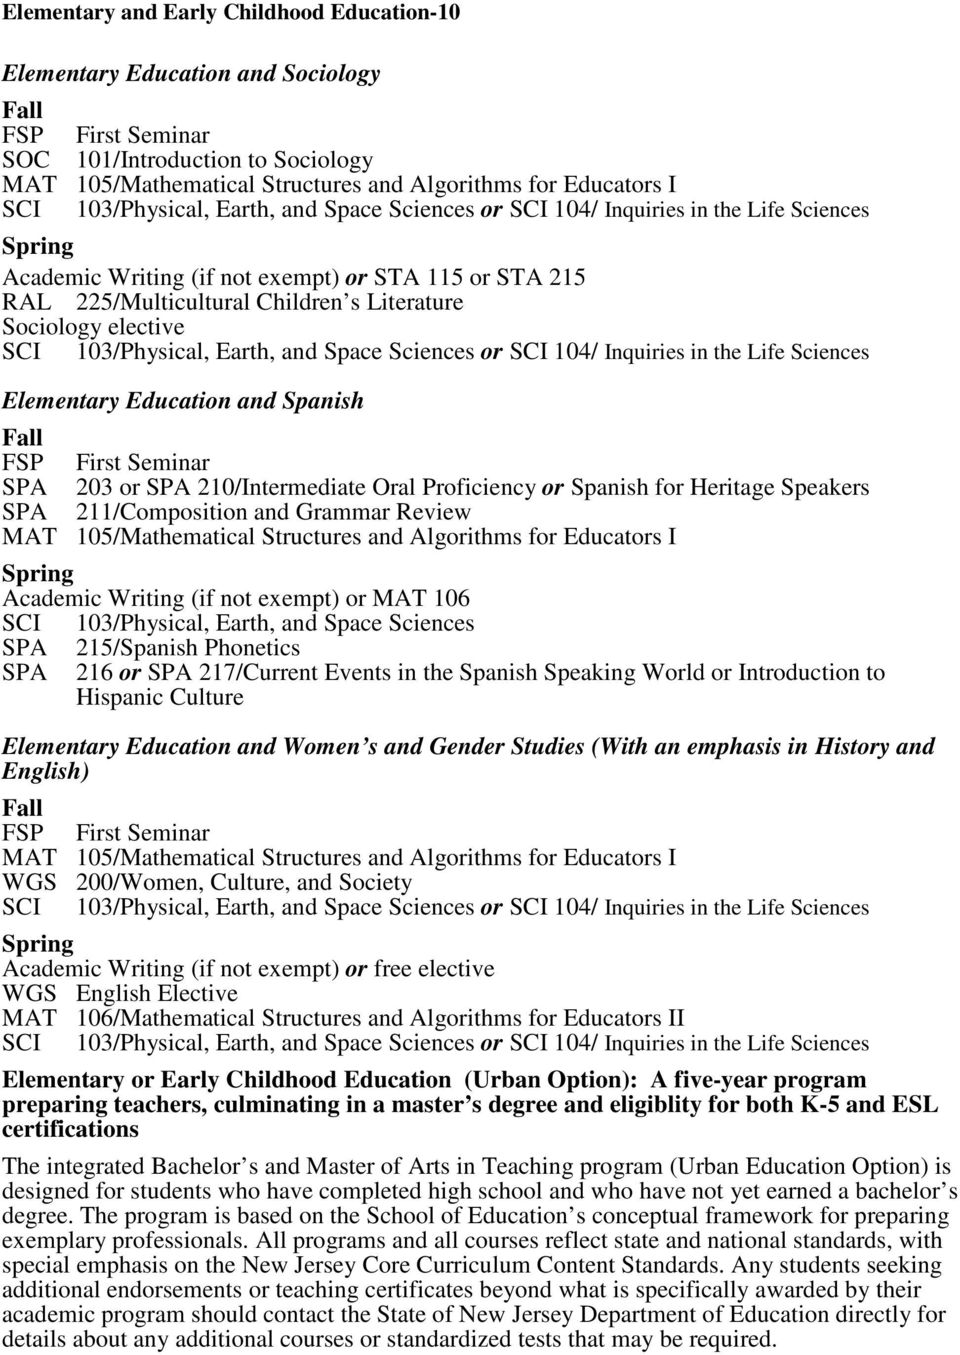 Writing (if not exempt) or MAT 106 SCI 103/Physical, Earth, and Space Sciences SPA 215/Spanish Phonetics SPA 216 or SPA 217/Current Events in the Spanish Speaking World or Introduction to Hispanic